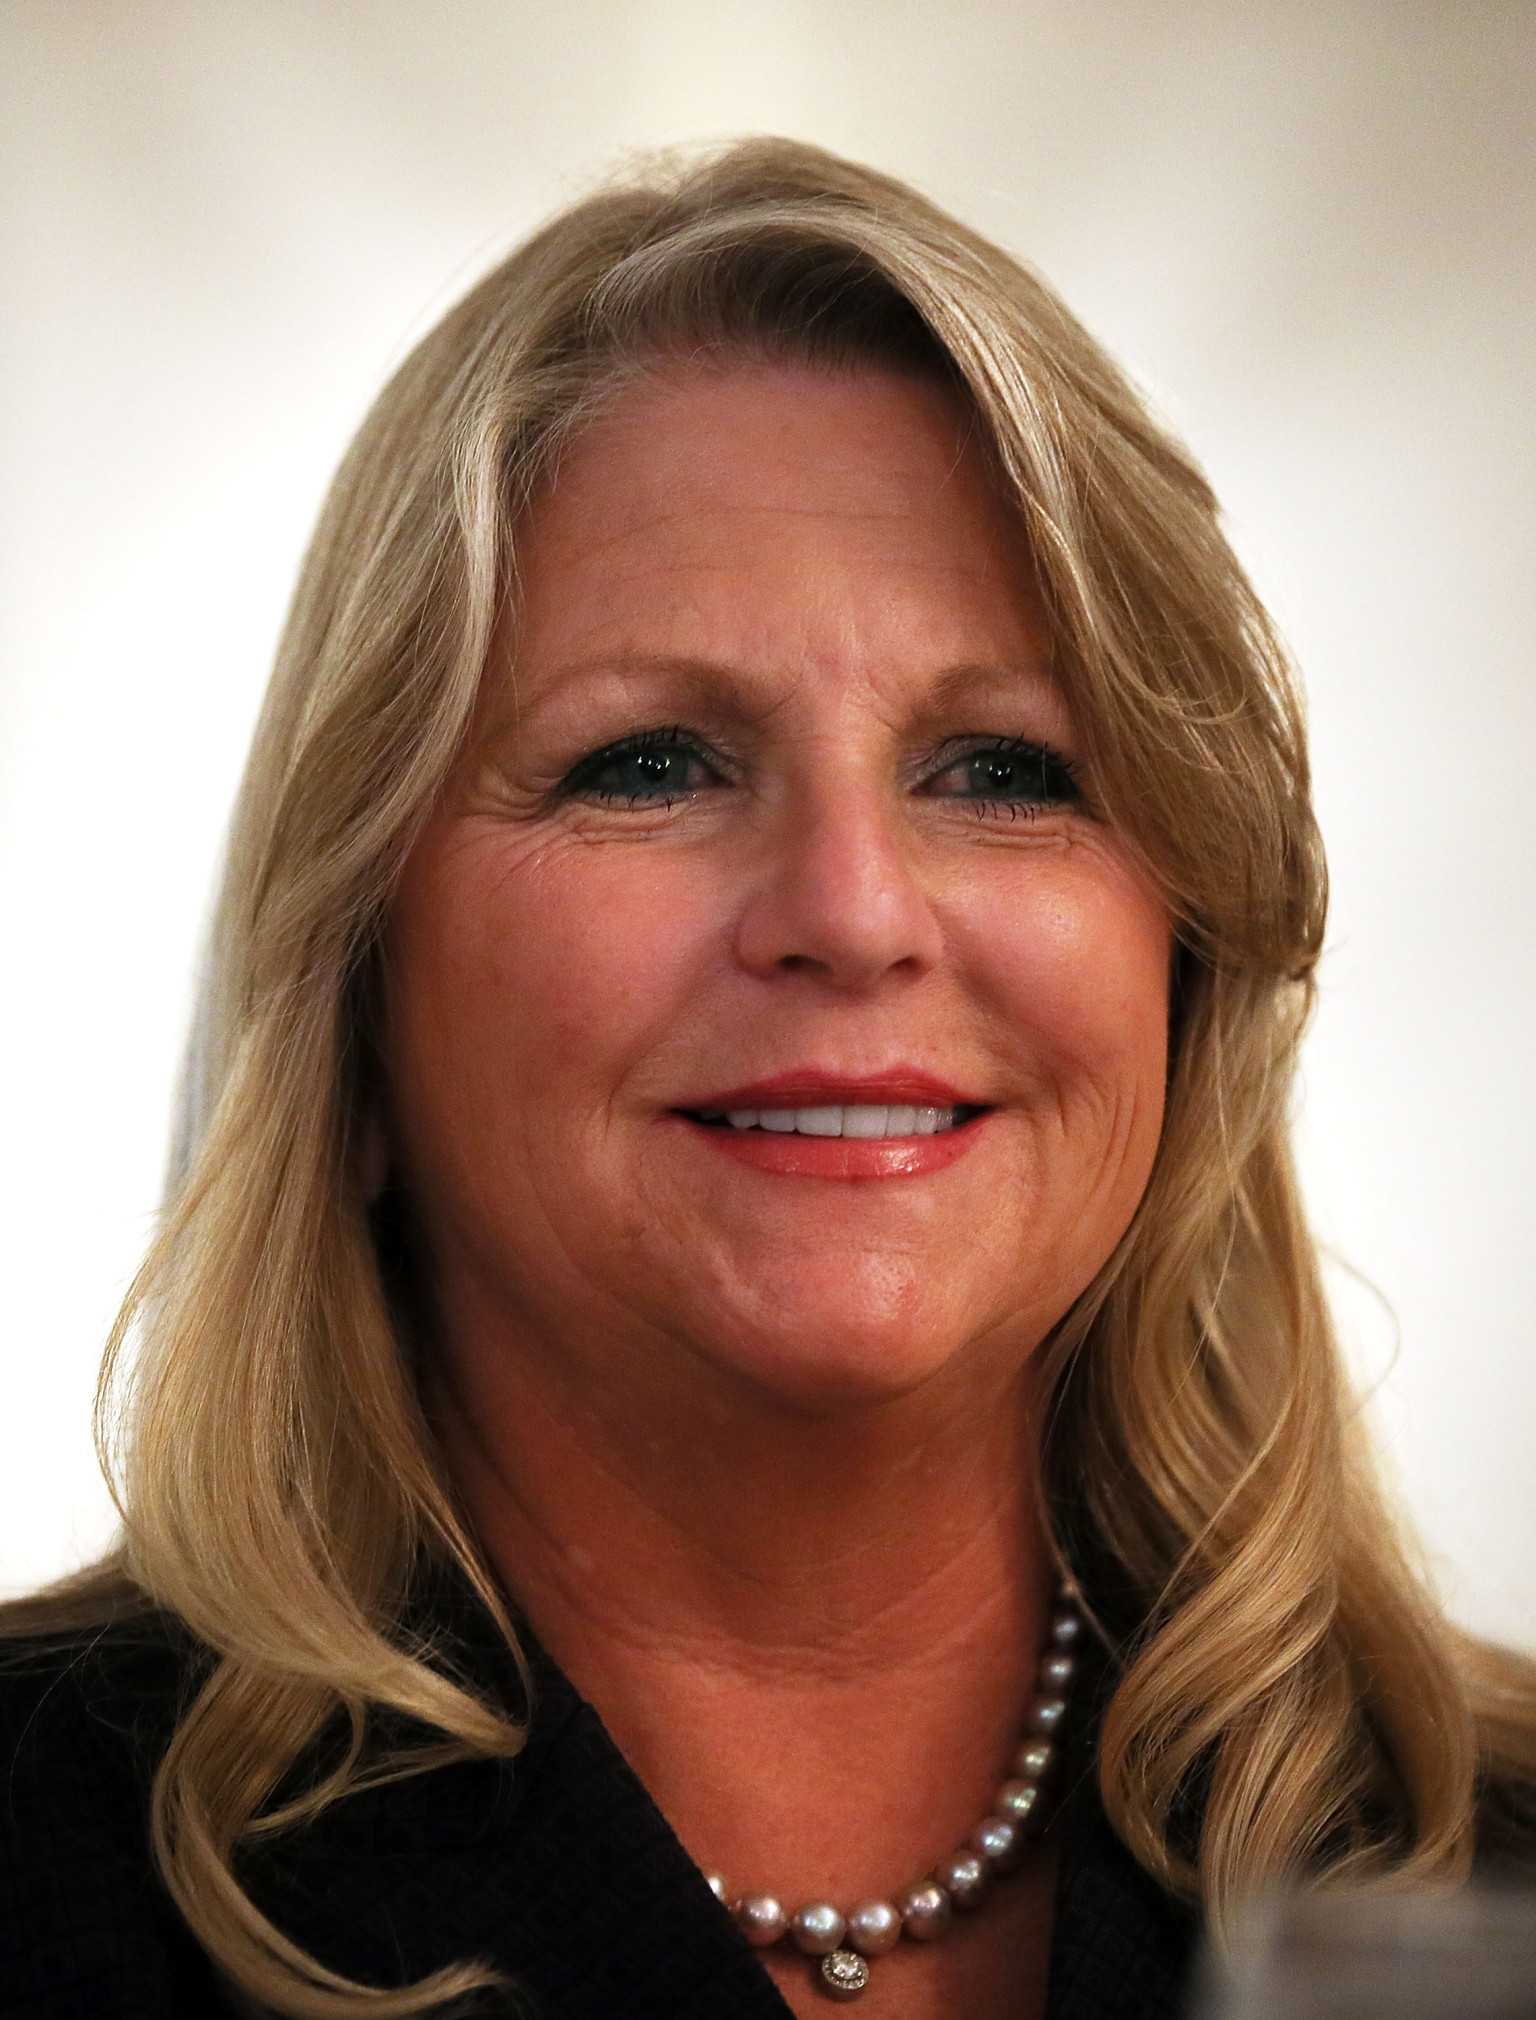 Maureen Mcdonnell S Dental Work Being Looked At By